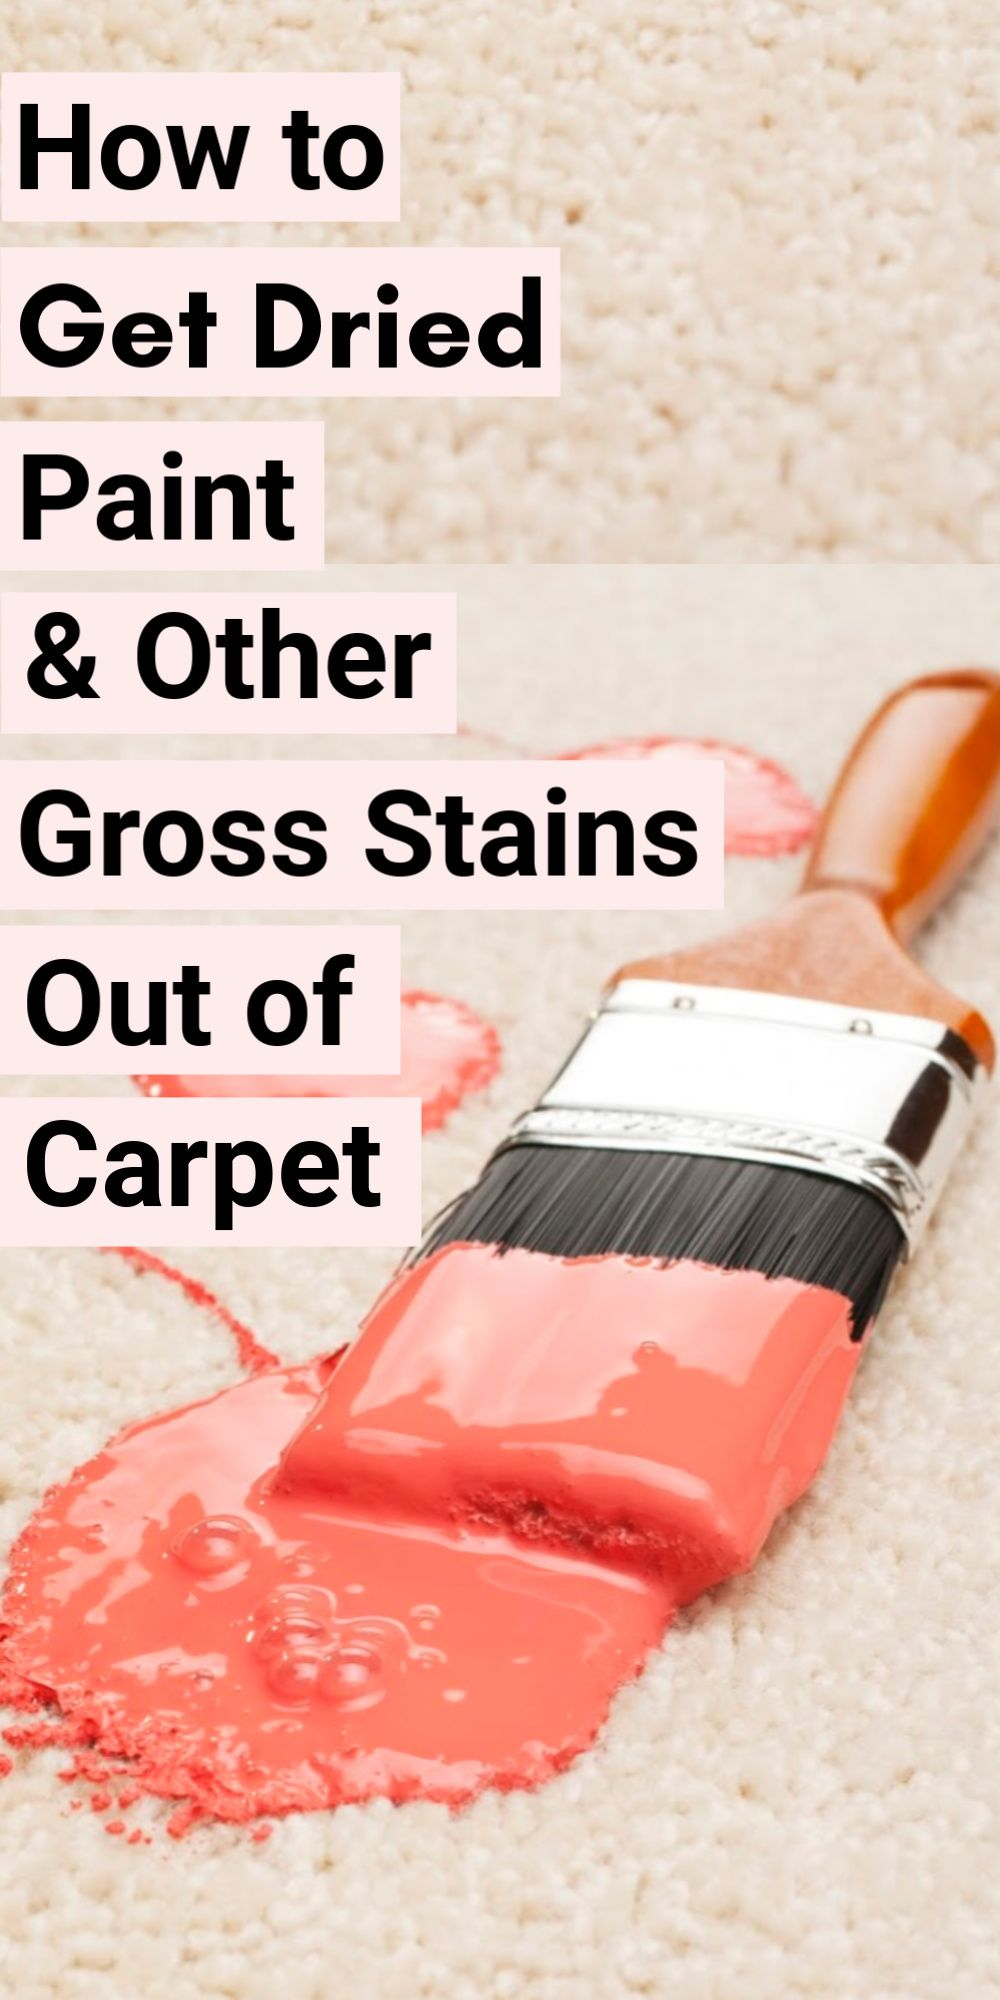 How To Get Dried Paint Out Of Carpet And Other Crazy Stains Stain Remover Carpet How To Clean Carpet Painting Carpet